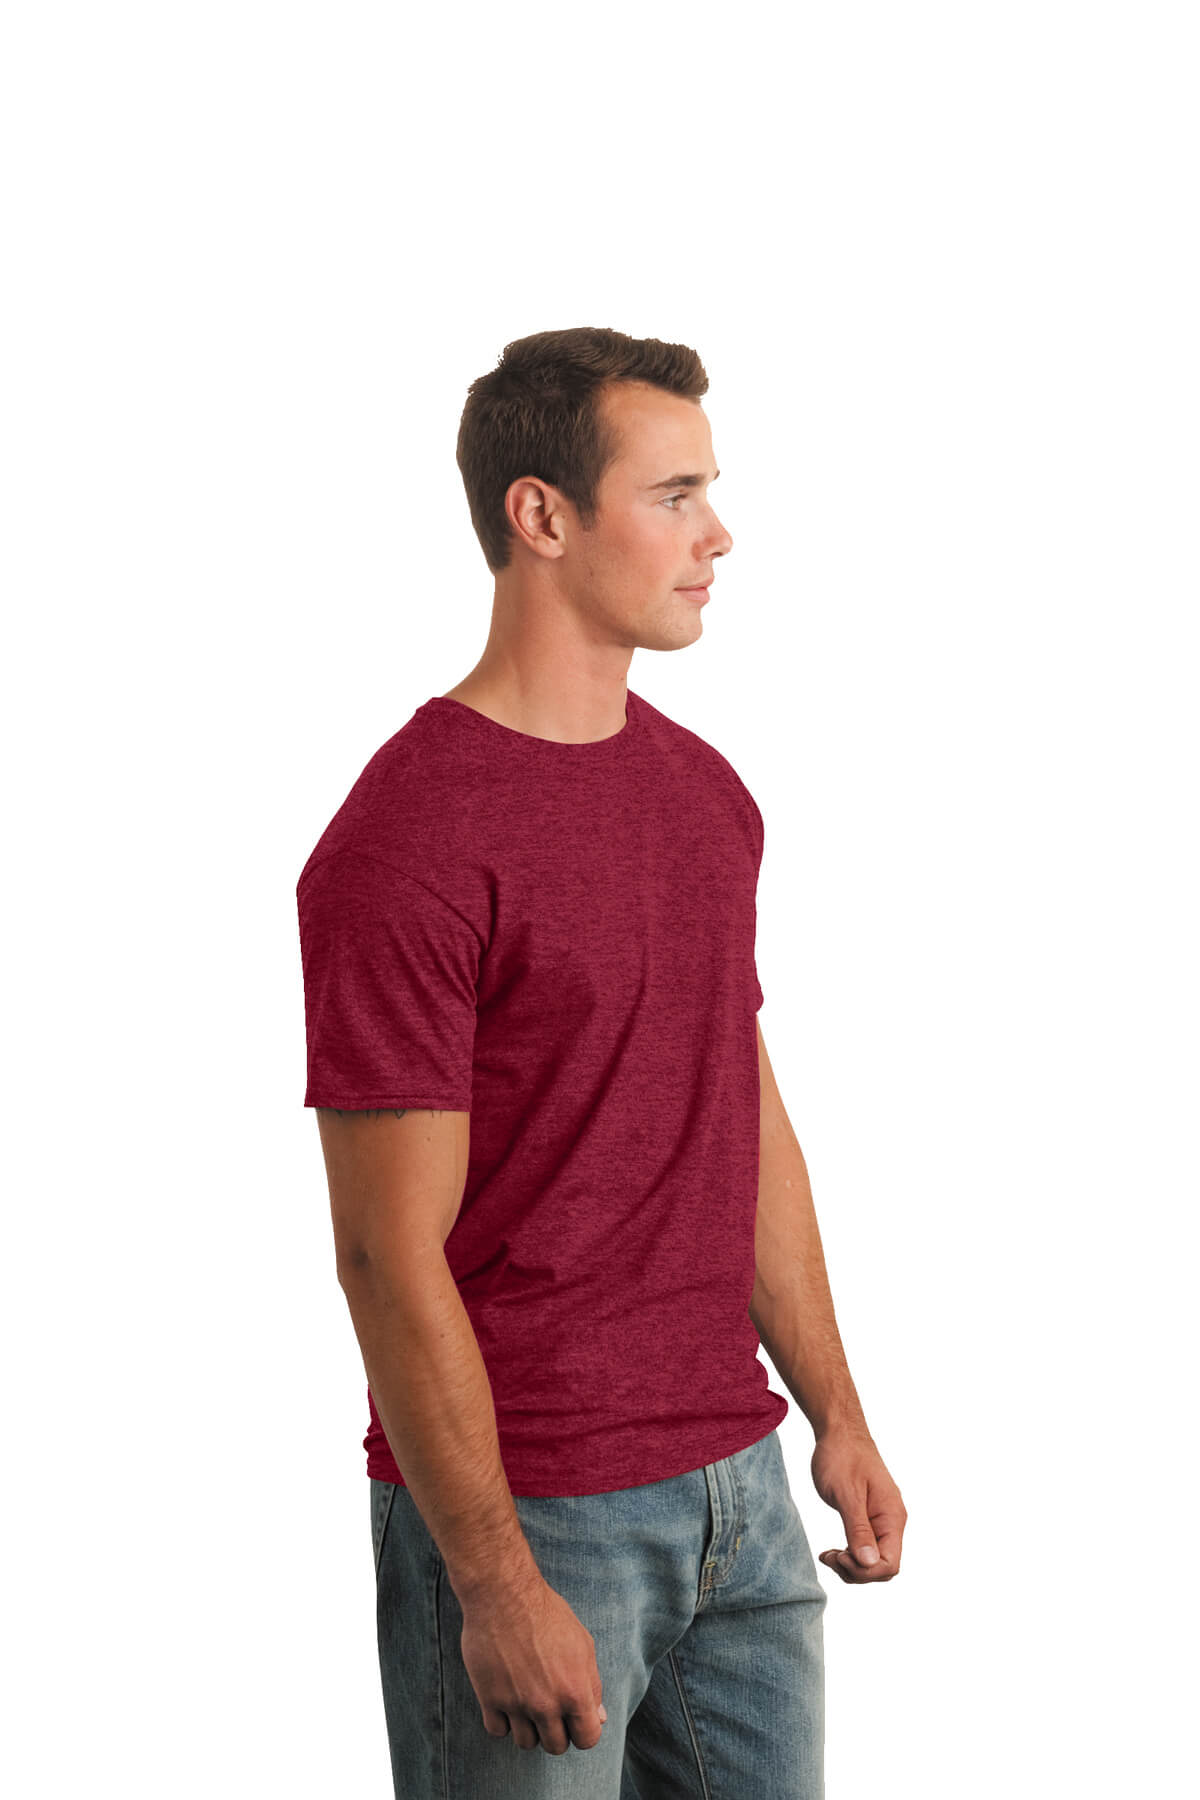 Cherry Red T-Shirt Model Side